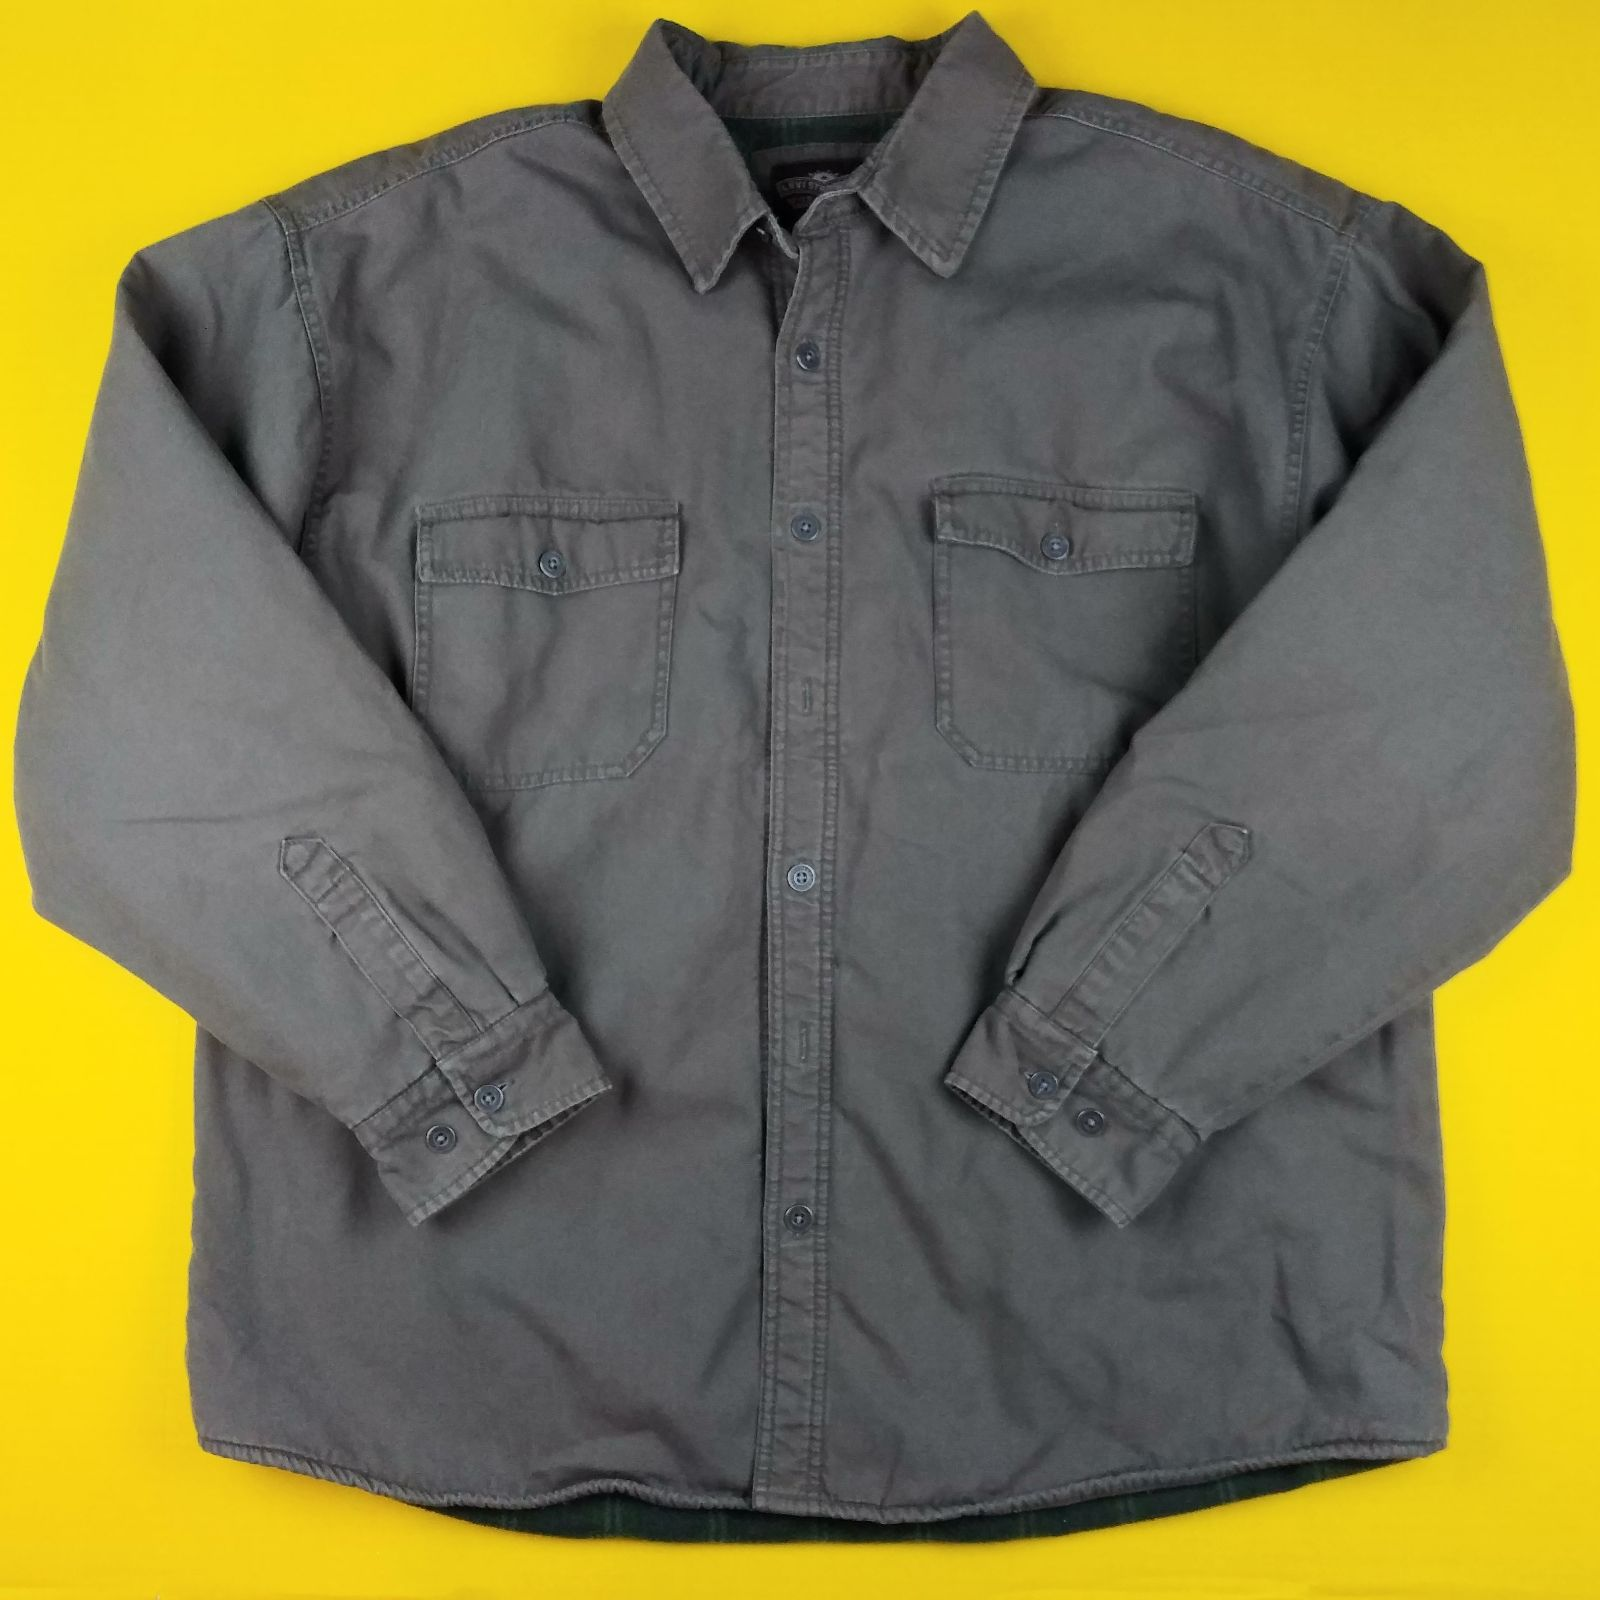 Thick fleece lined Levi's Shirt